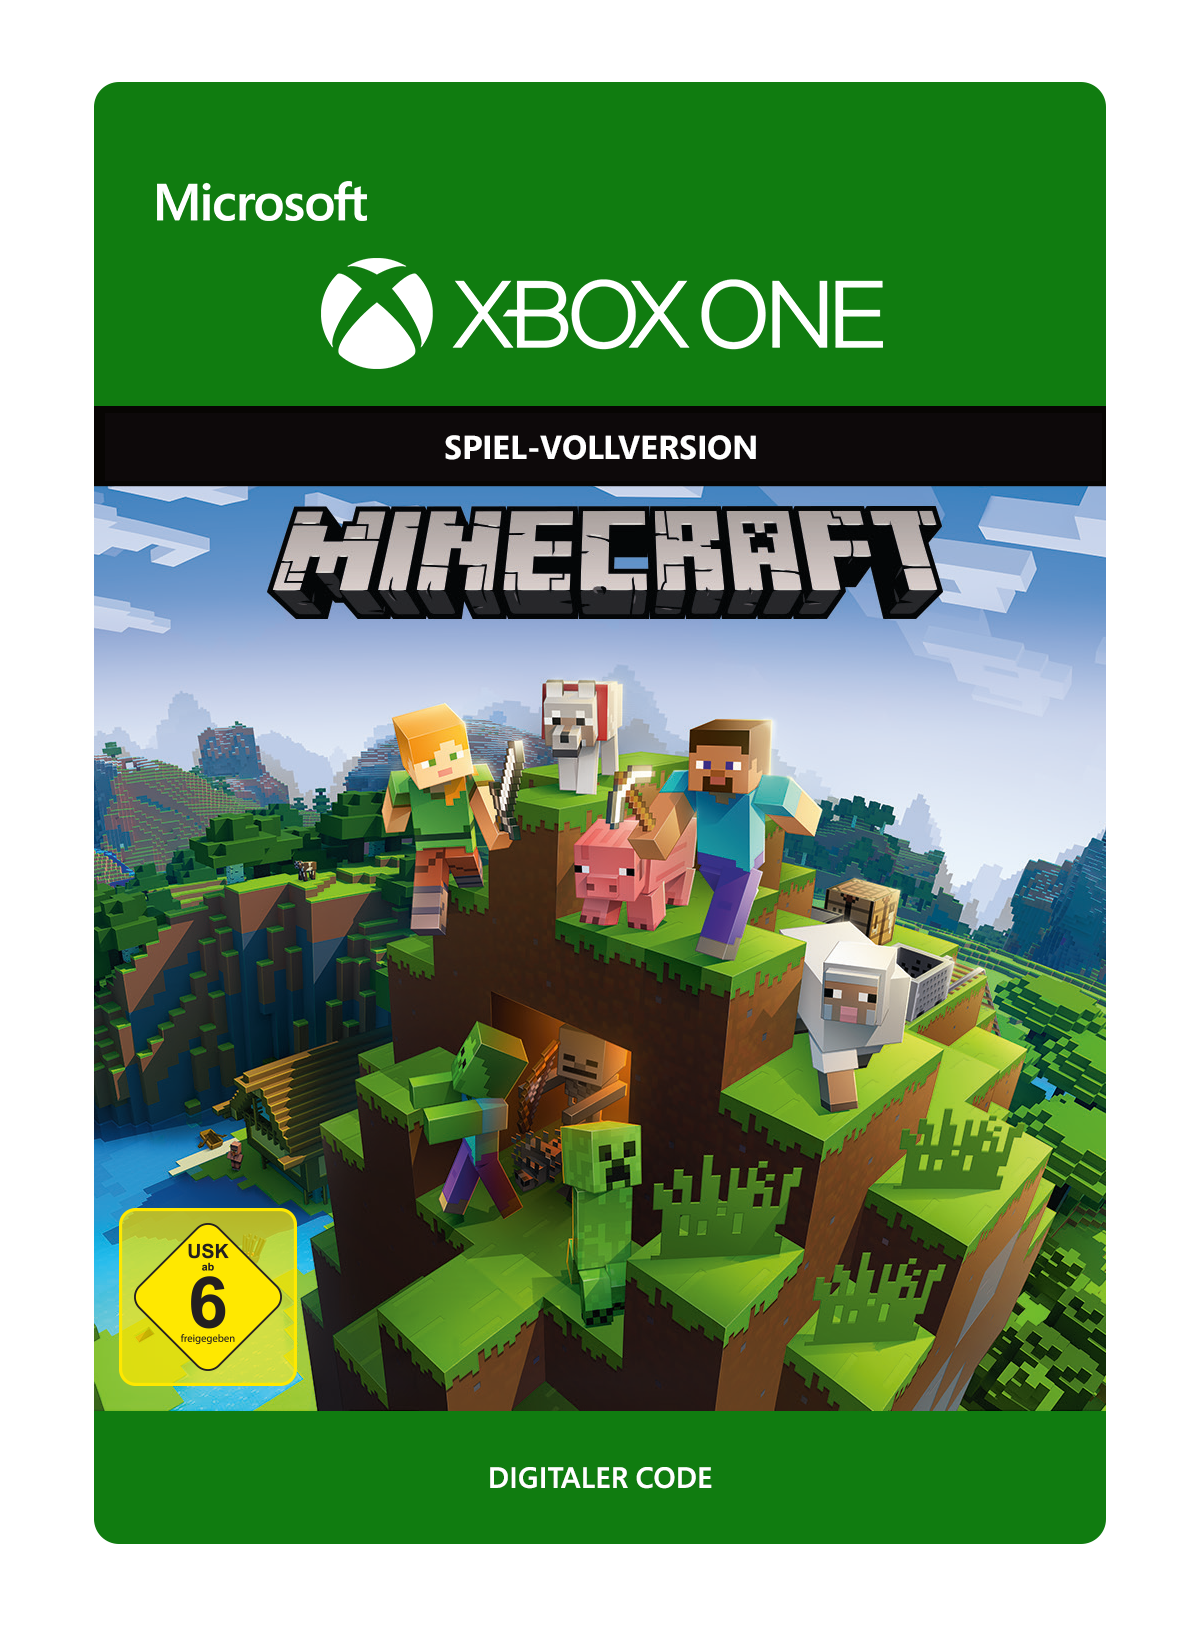 Minecraft XBox Konsole Gaming Welt - Minecraft spielen vollversion